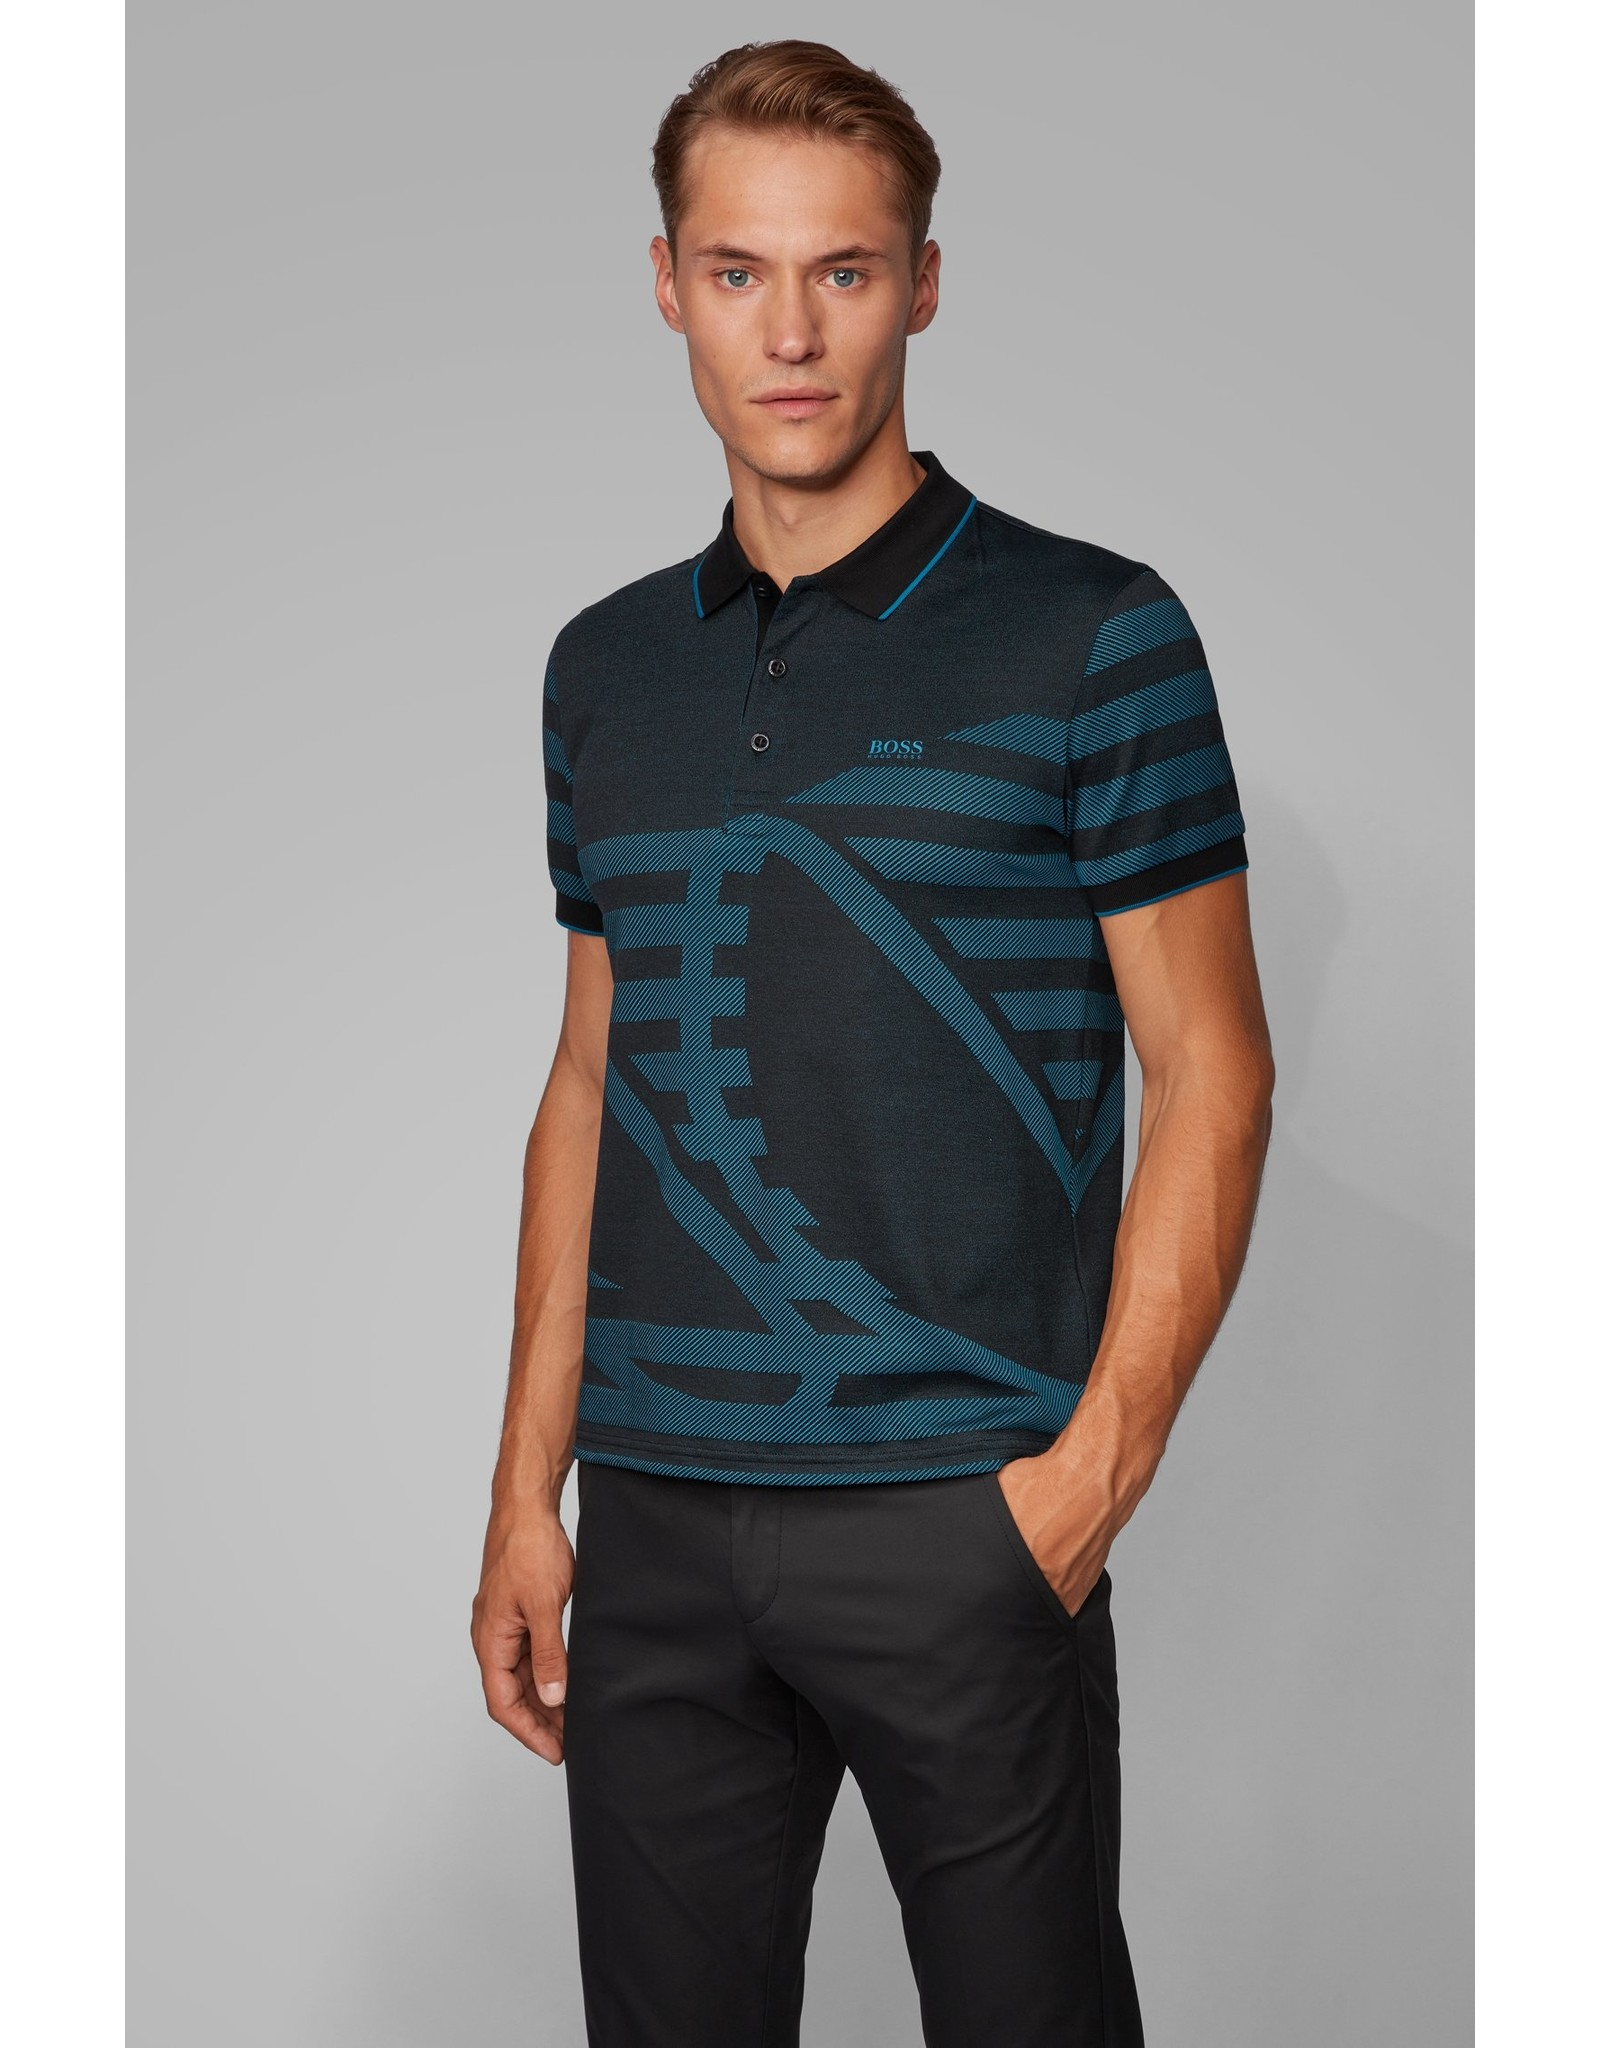 BOSS ATHLEISURE BOSS ATHLEISURE PADDY 5 F19